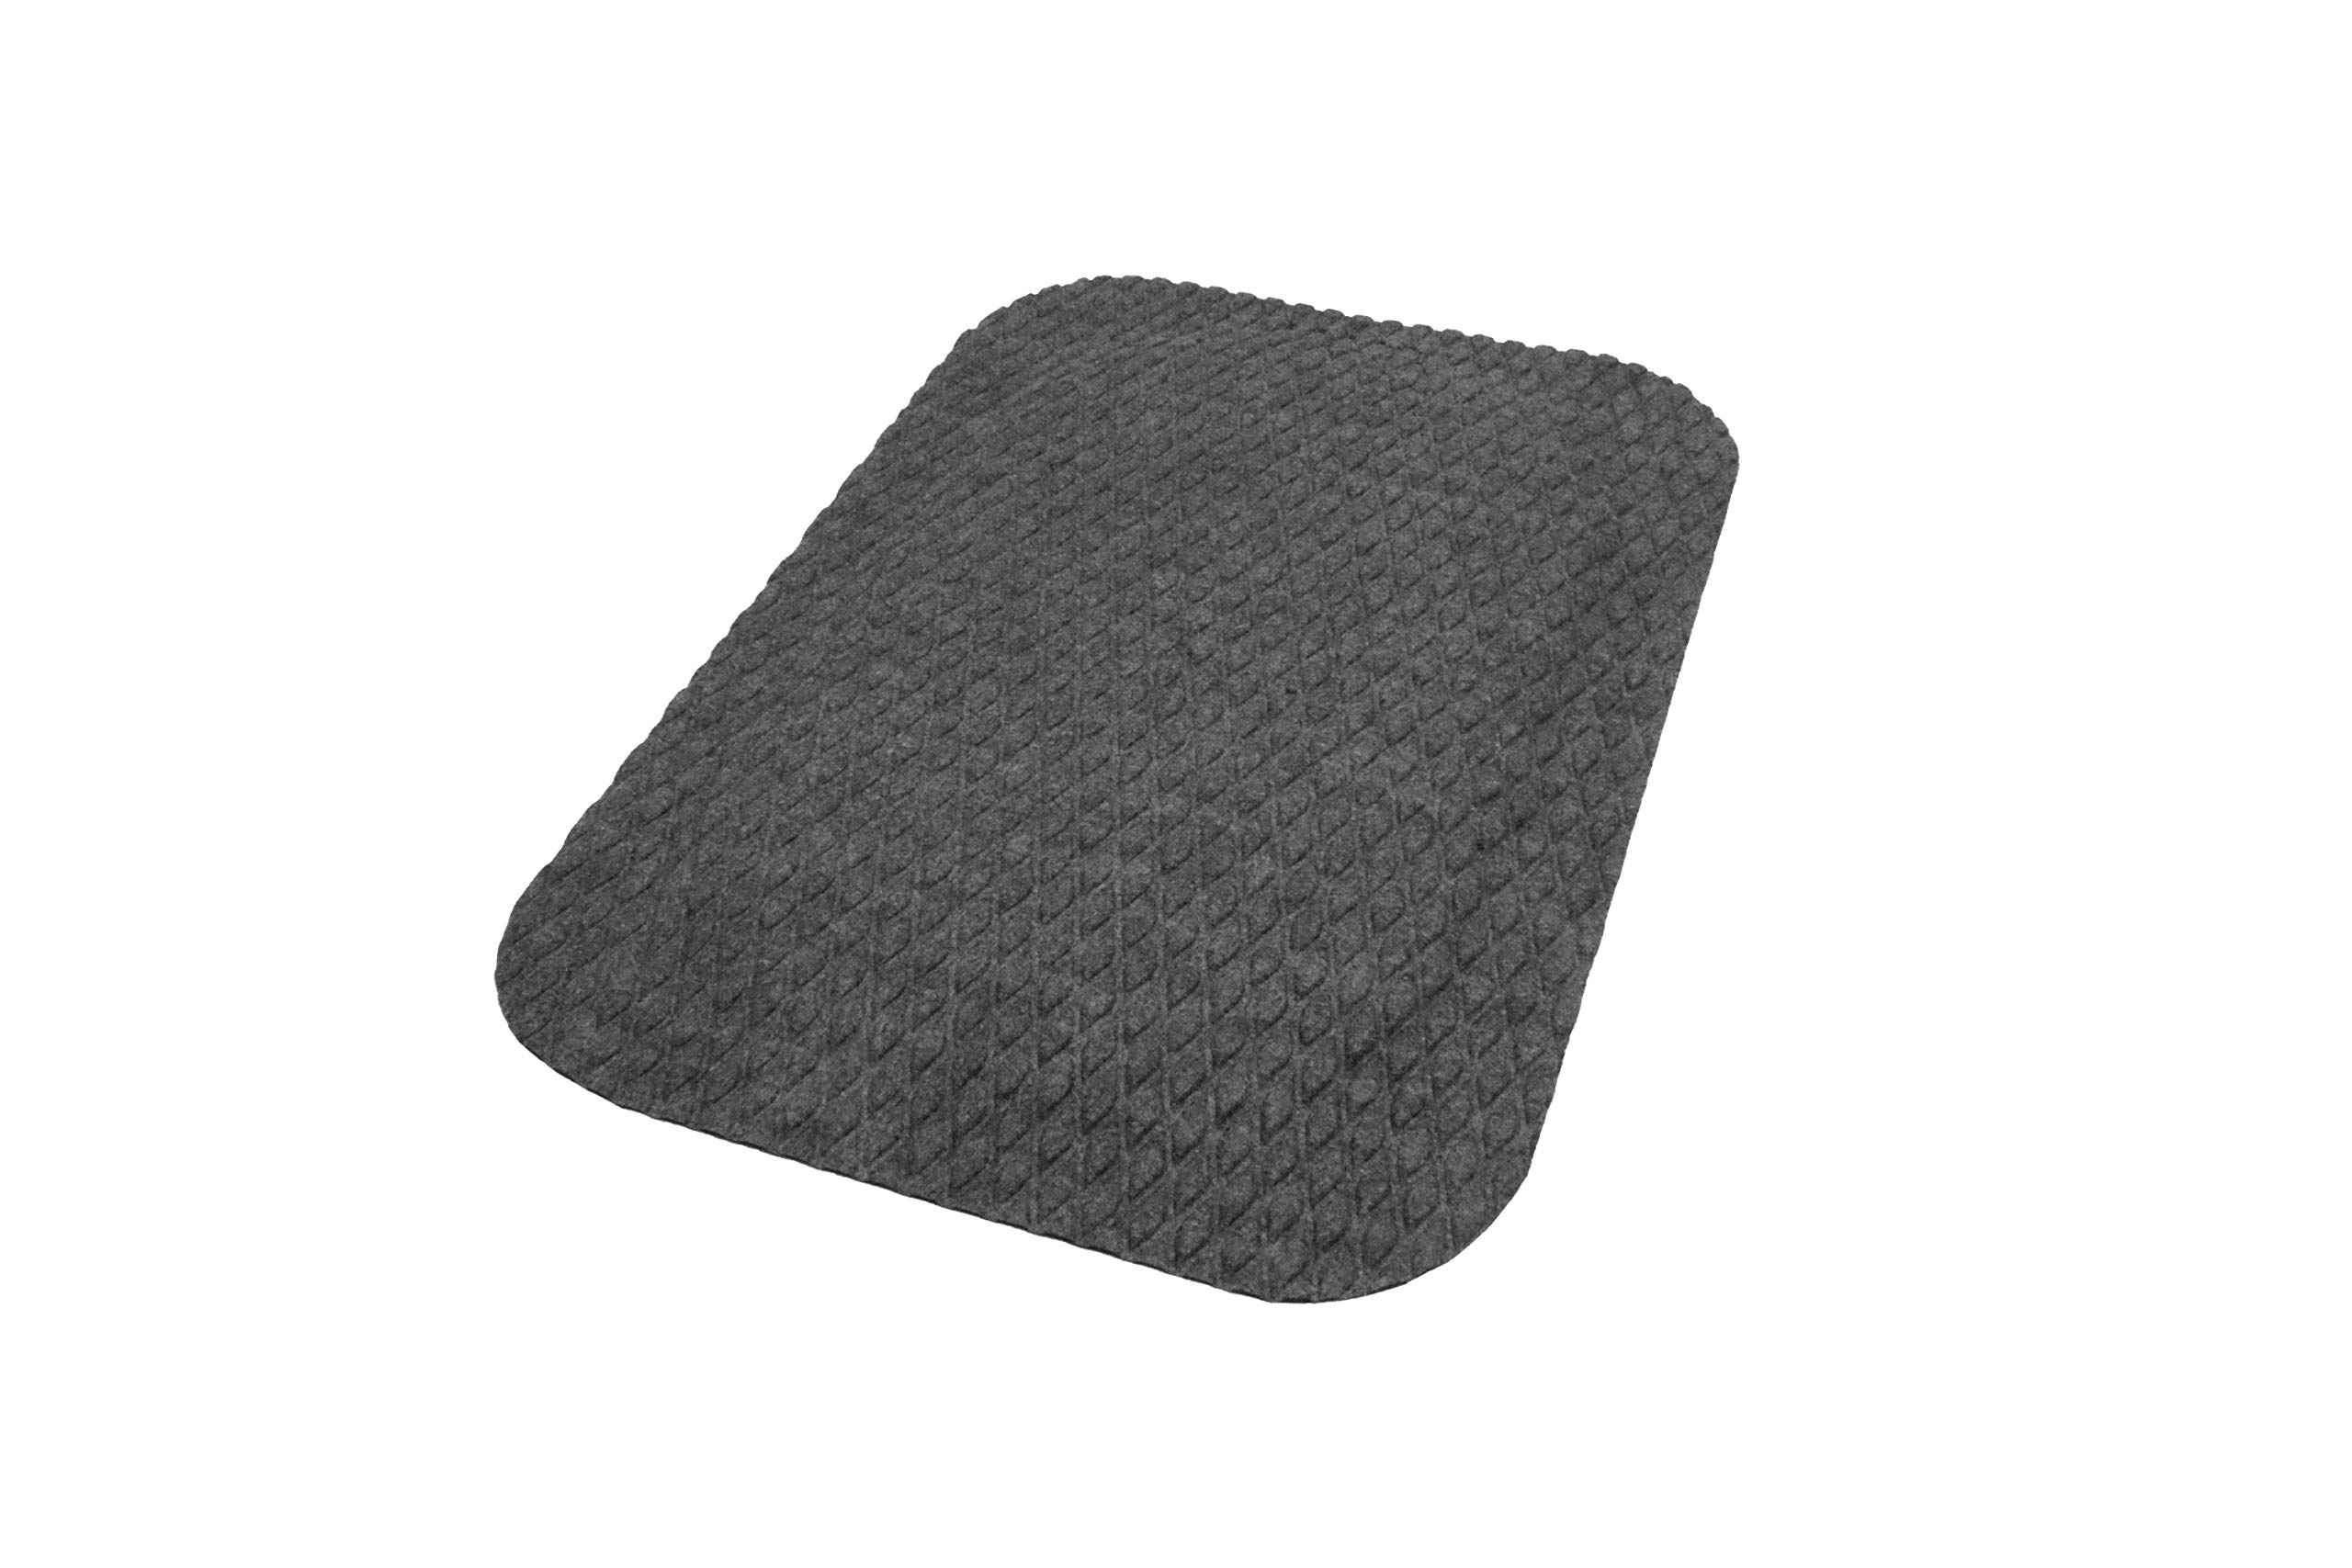 Hog Heaven Fashion Anti-Fatigue Mat – Stain-Resistant, Eco-Friendly, Attractive Fabric Surface Over Durable Memory Foam (Granite, 3' x 5', 5/8-inch Thick)